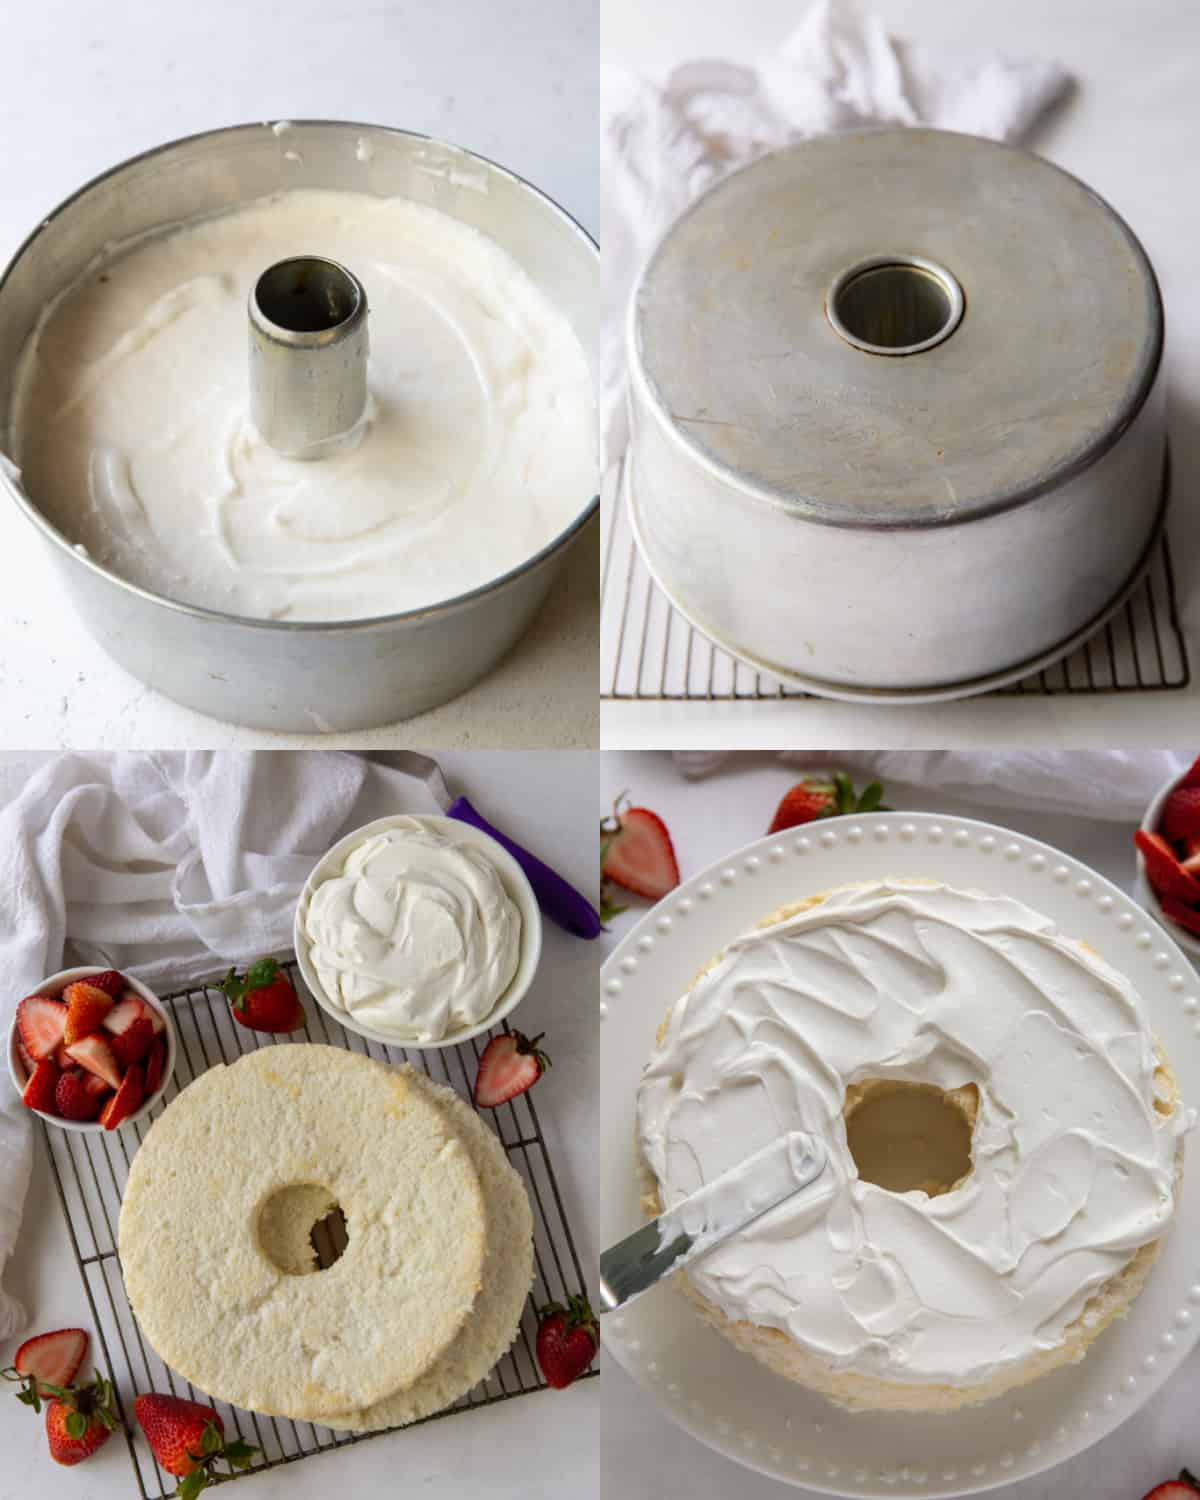 Process shots of removing angel food cake from a pan, slicing it, and layering it with whipped cream.